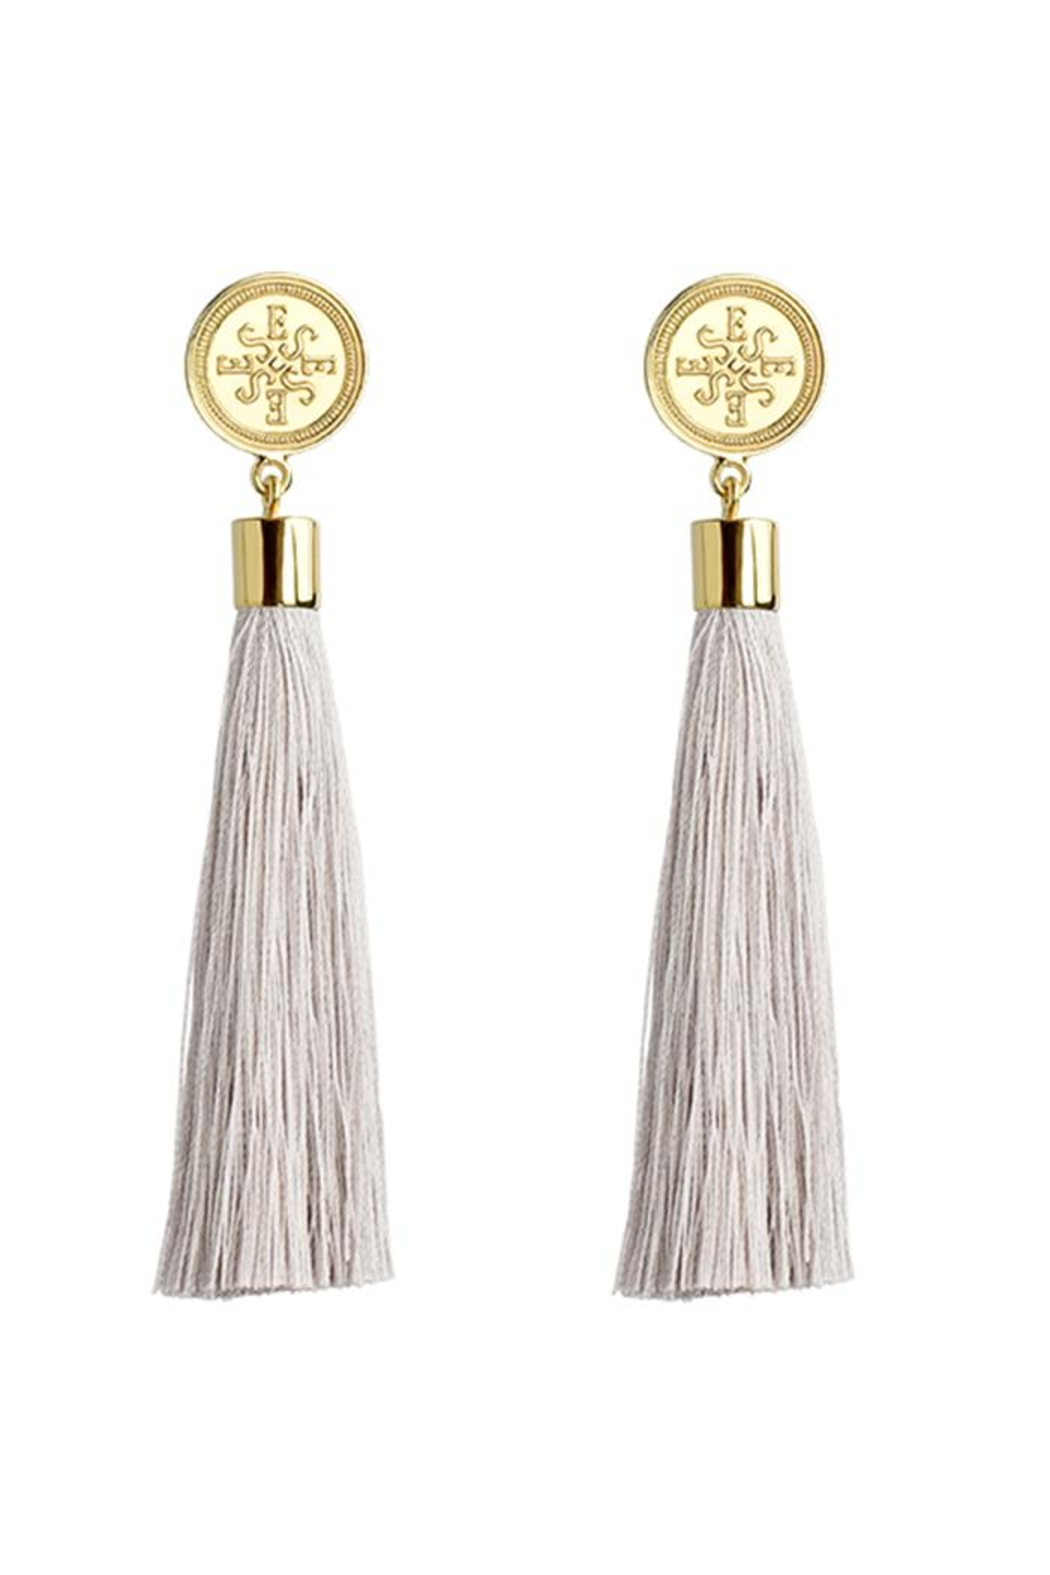 Eduardo Sanchez Tassel Gold Earrings - Front Full Image